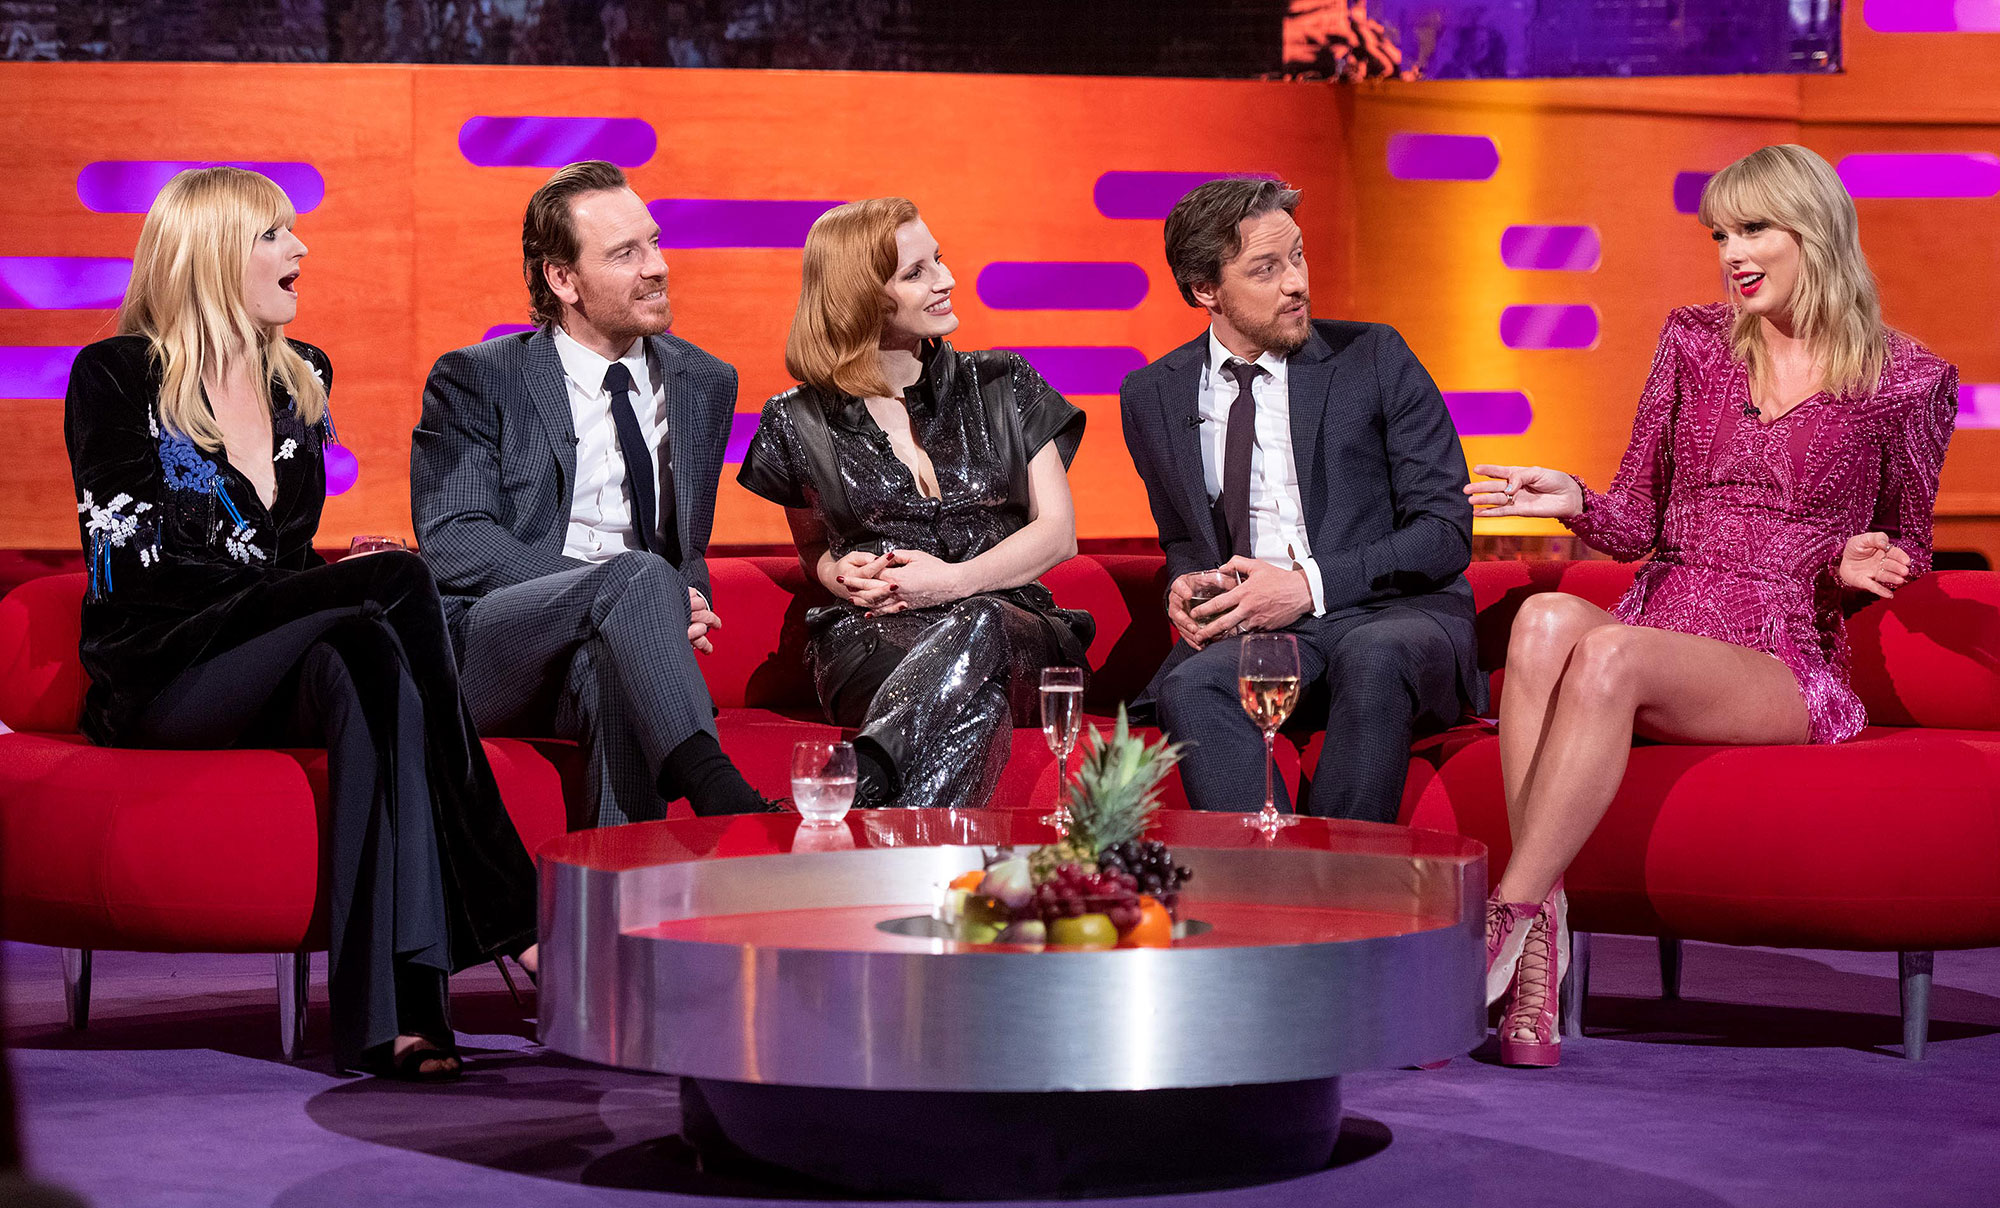 Taylor Swift and Sophie Turner Graham Norton Show - USA Rights Only – London, UK -20190523-Host Graham Norton with (left to right) Sophie Turner, Michael Fassbender, Jessica Chastain, James McAvoy and Taylor Swift during the filming of the Graham Norton Show at BBC Studioworks 6, Television Centre, Wood Lane, London, to be aired on BBC One on Friday evening. -PICTURED: Sophie Turner, Michael Fassbender, […]